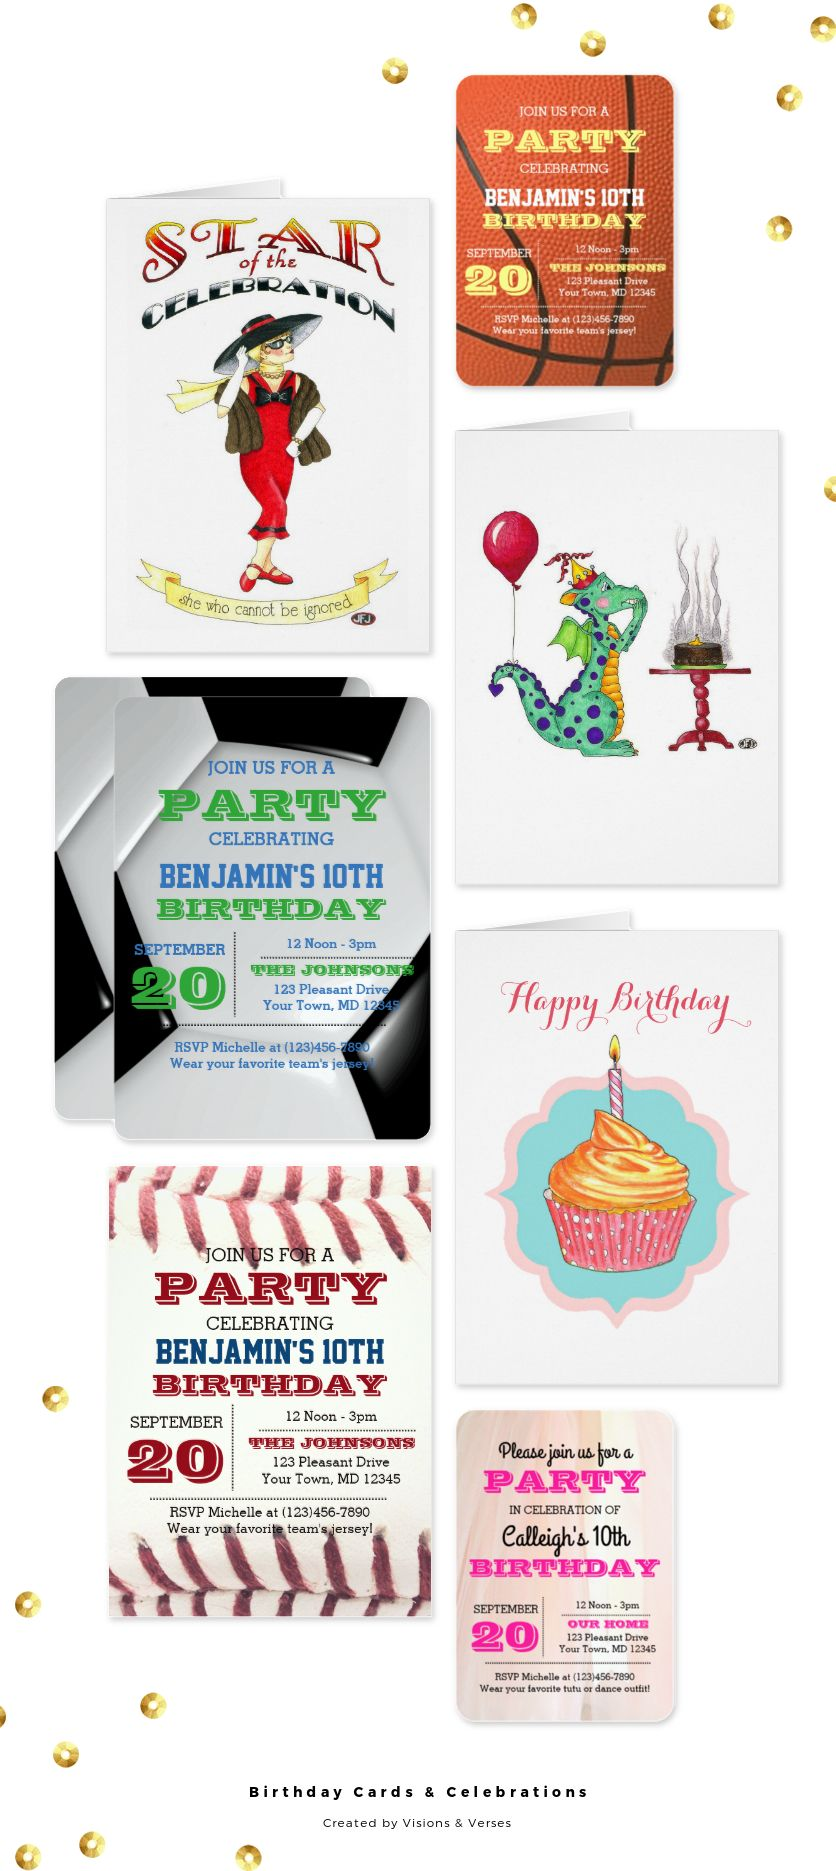 A collection of birthday cards and birthday party essentials